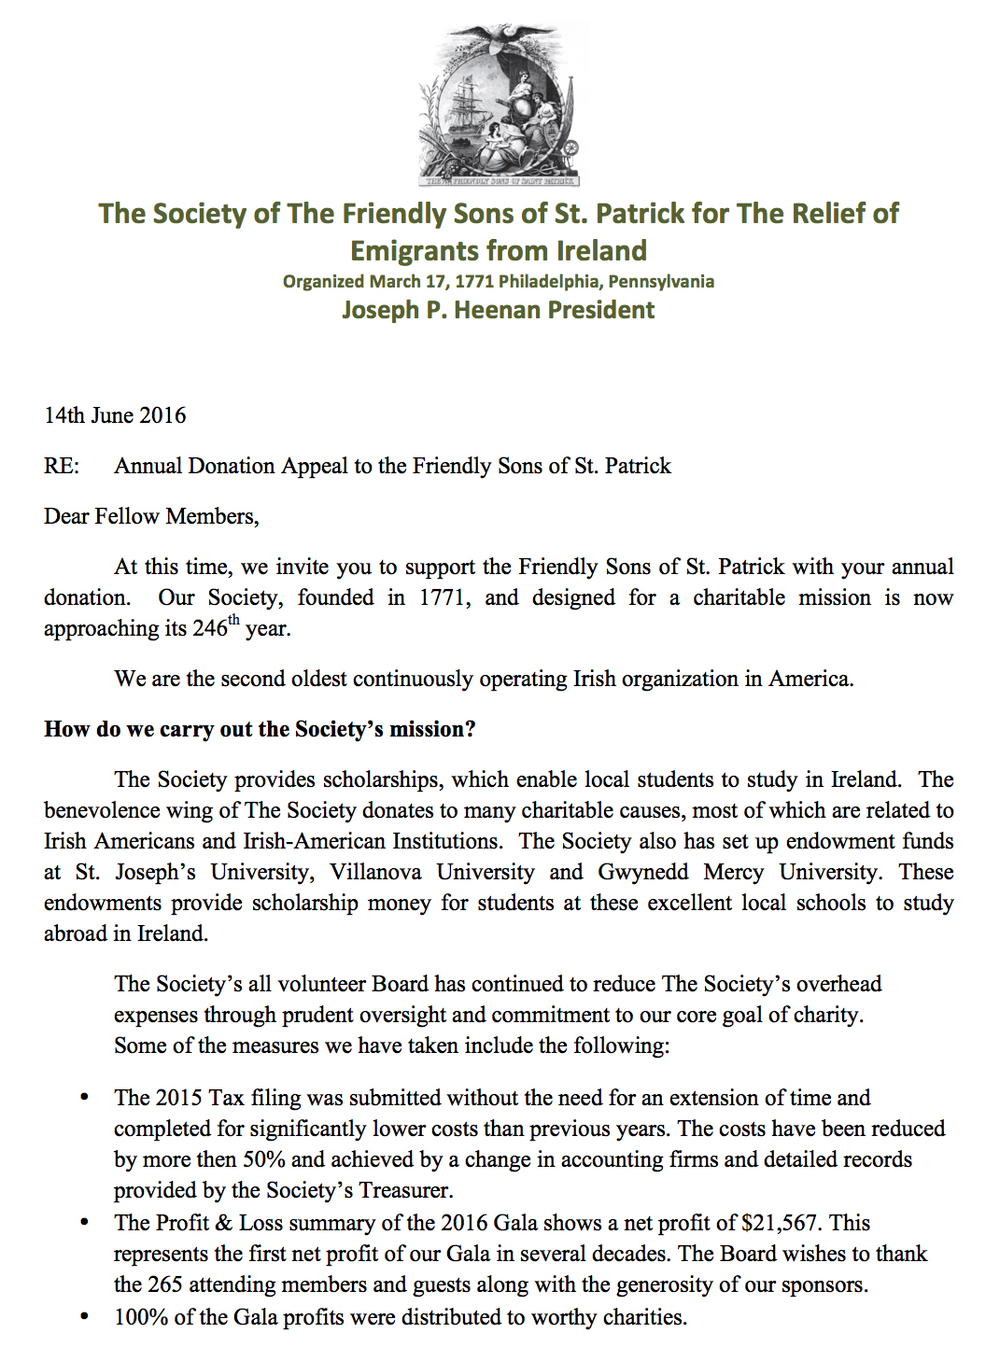 2016 Annual Donation Appeal Letter The Society Of The Friendly